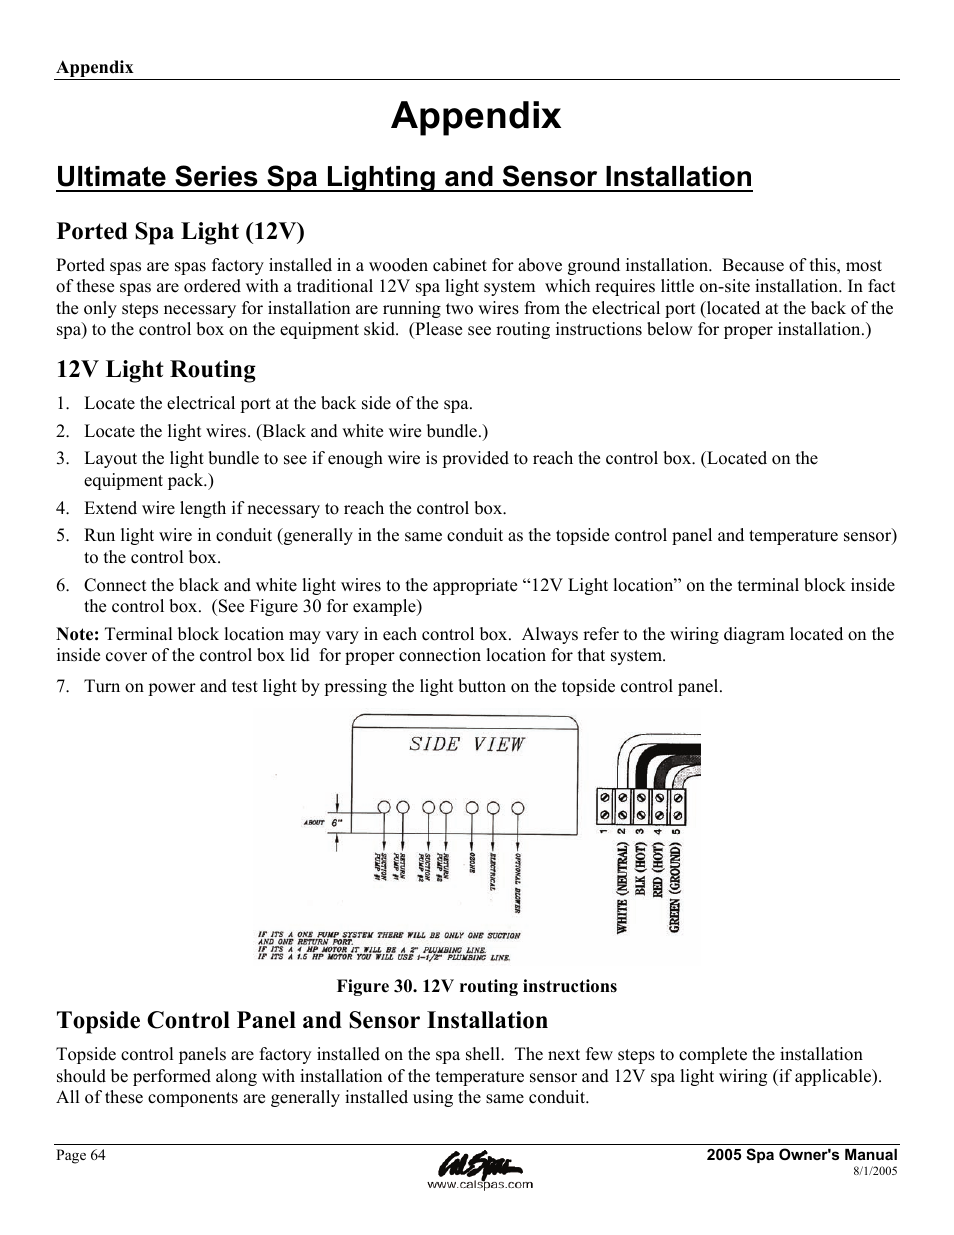 Cal Spa Wiring Diagram Install Books Of Appendix Ported Light 12v Routing Spas Rh Manualsdir Com